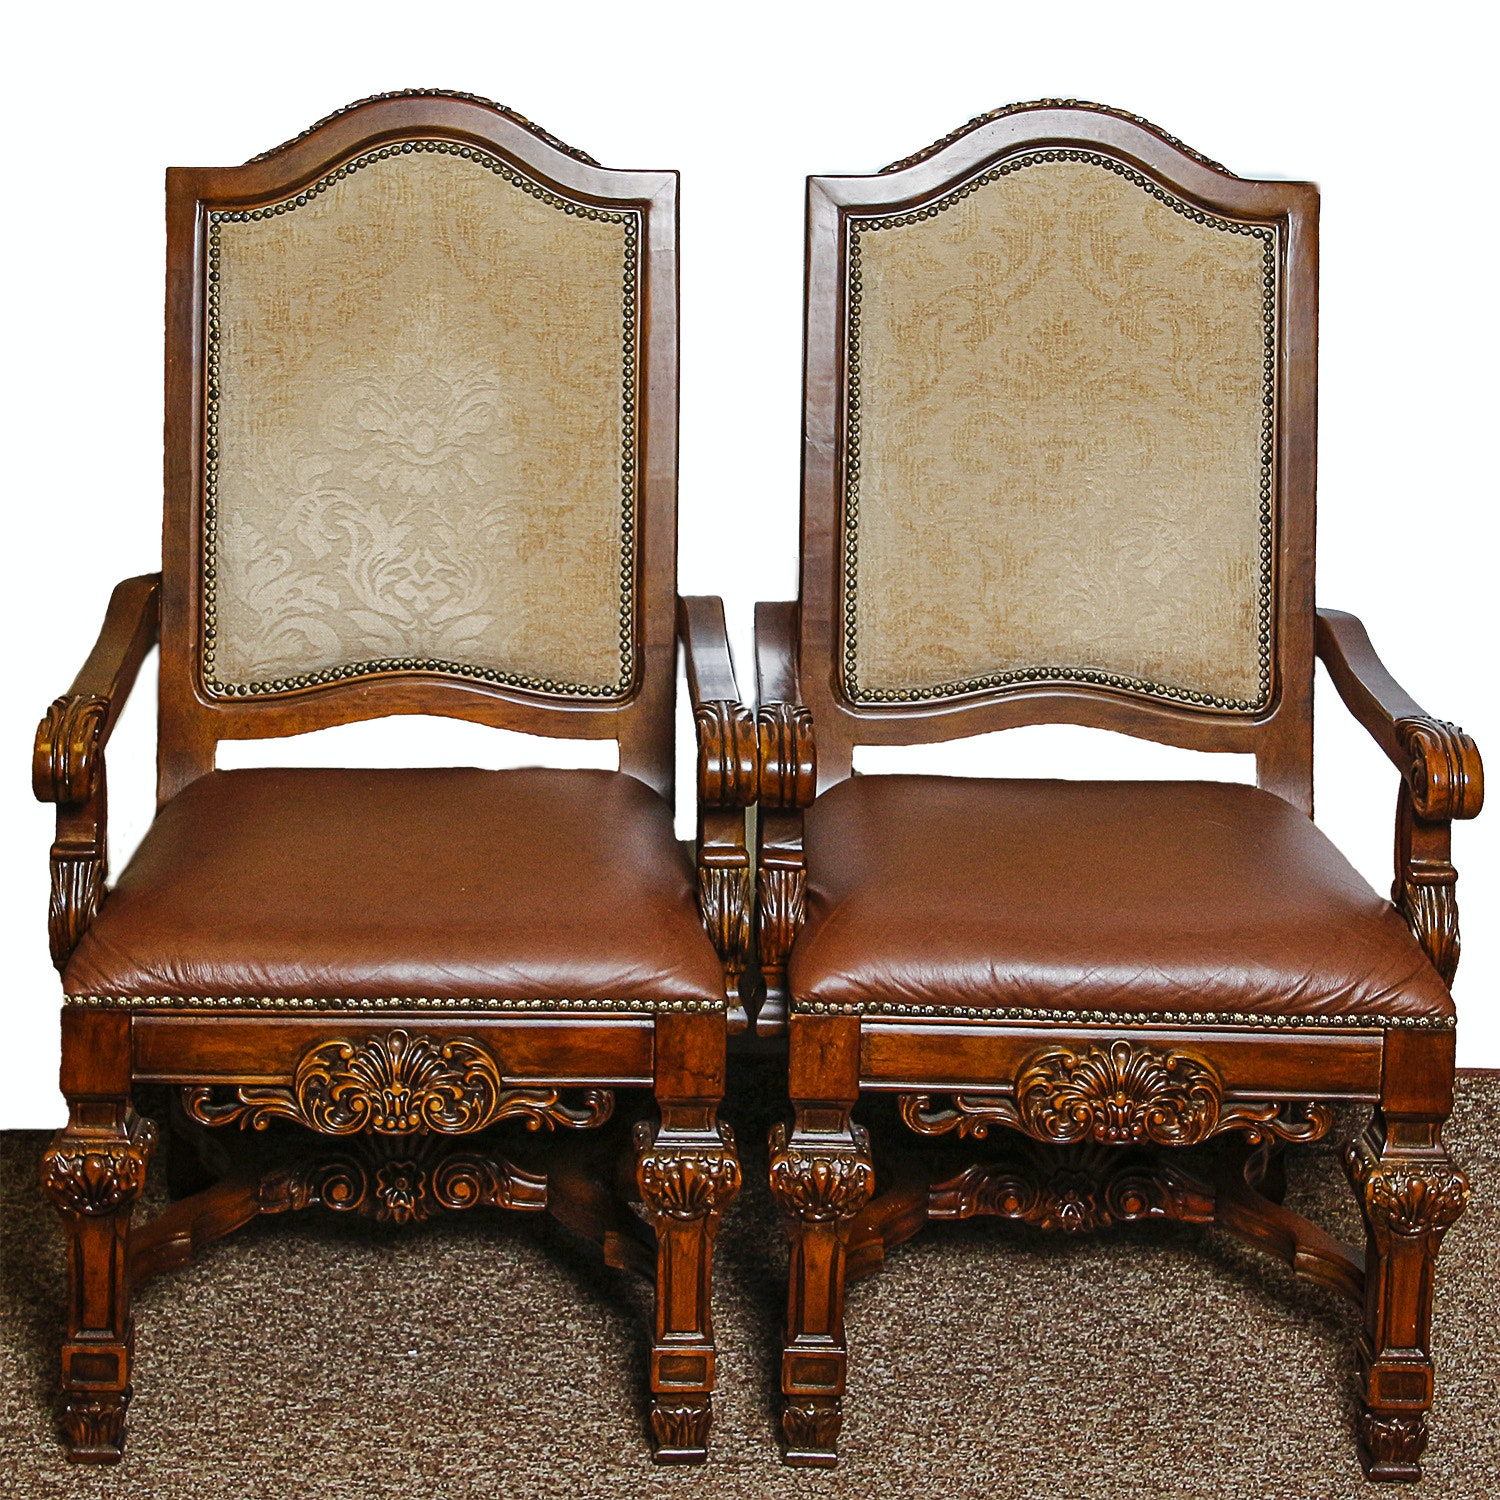 French Provincial Style Armchairs